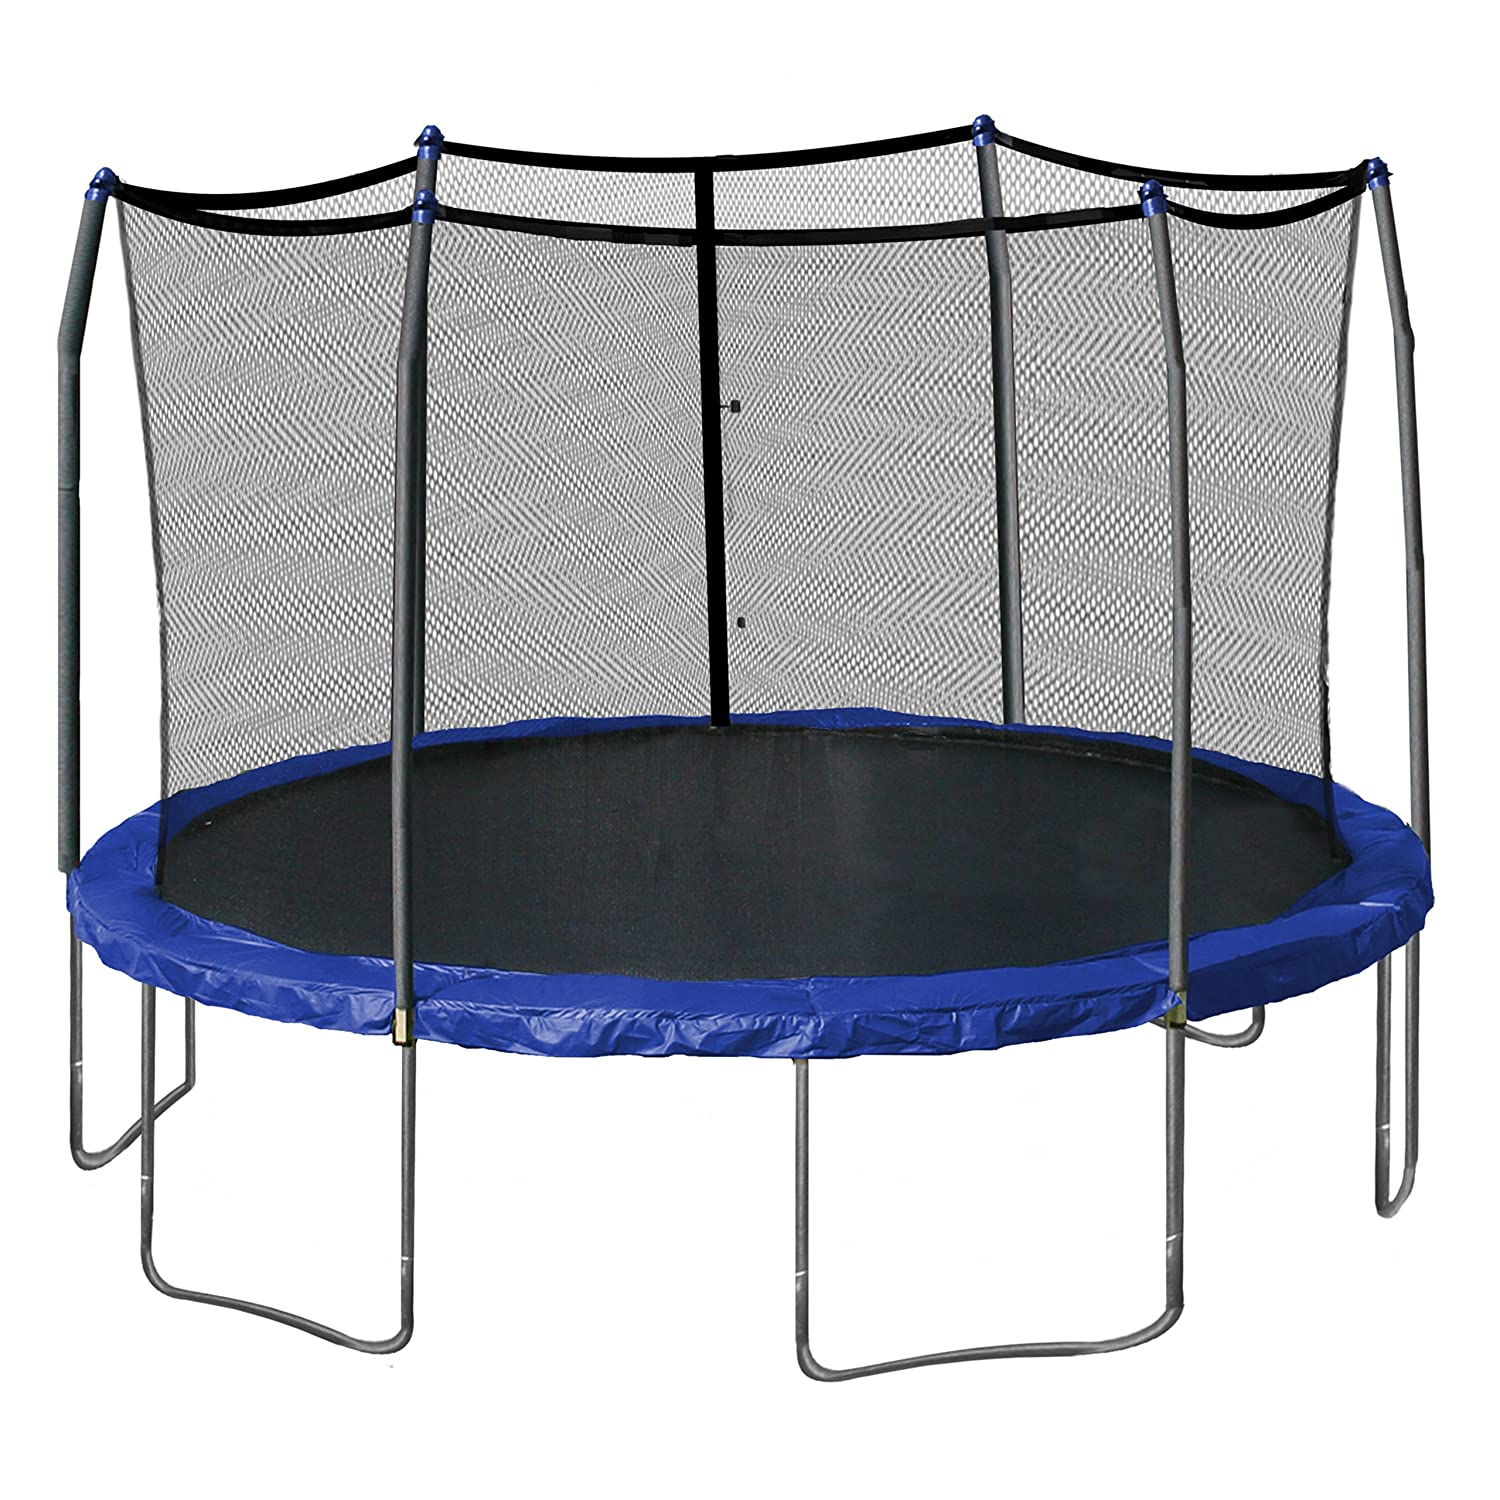 Skywalker 15ft Trampoline with Basketball Hoop Black Friday Deals